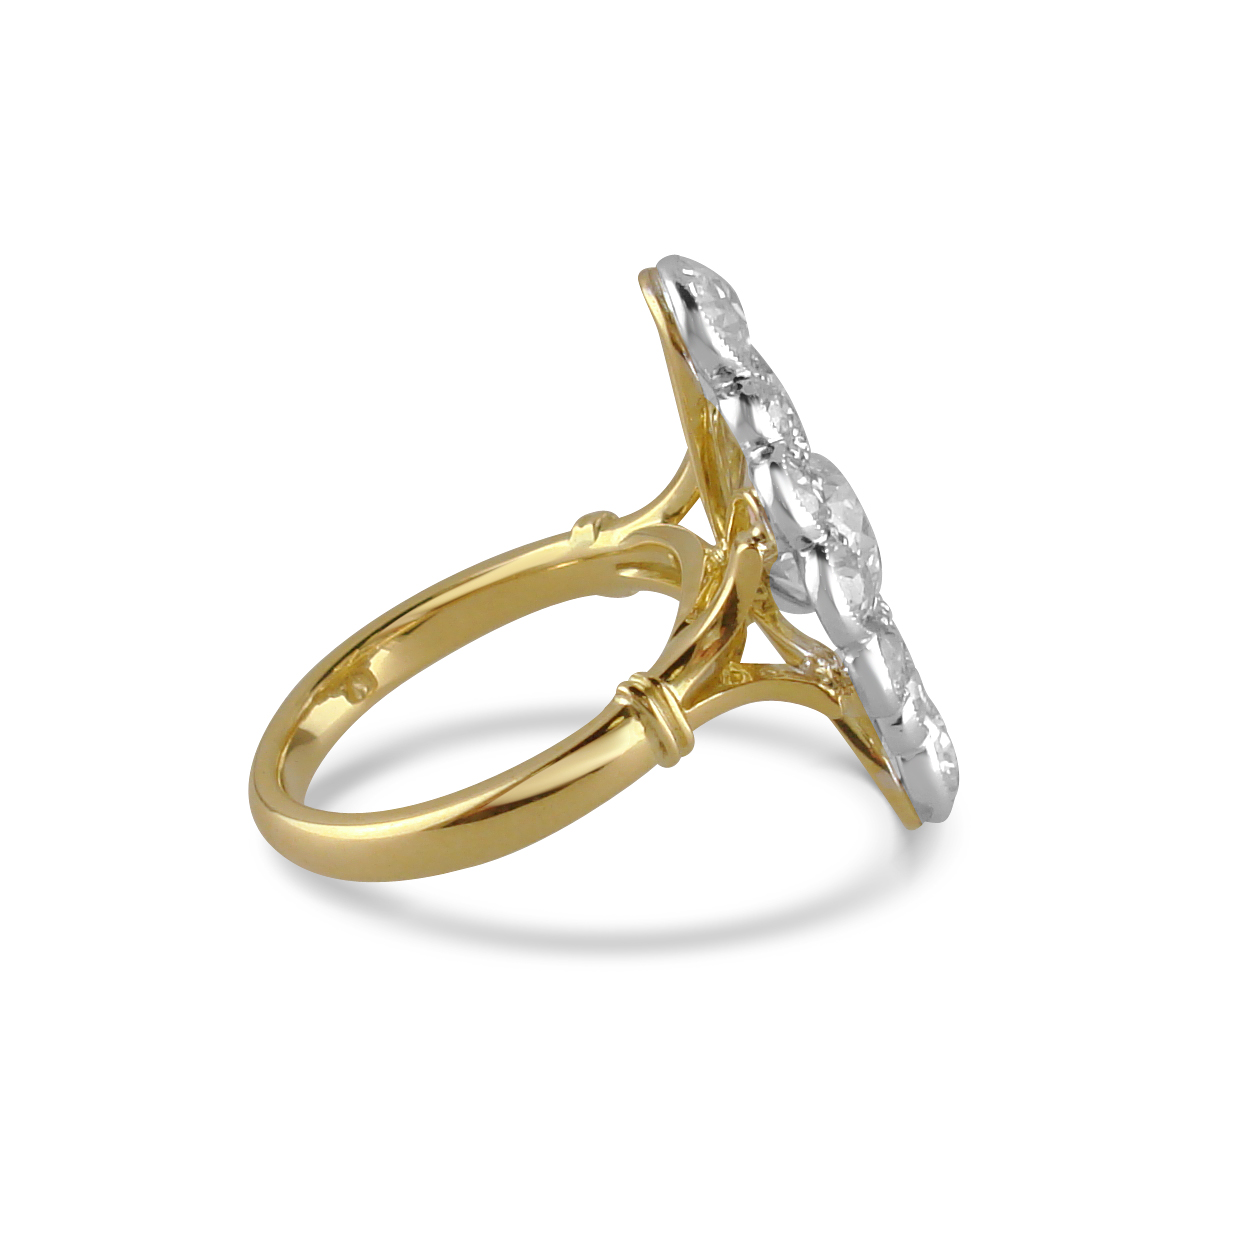 old-cut-diamond-boat-ring-in-18ct-yellow-gold-1.jpg